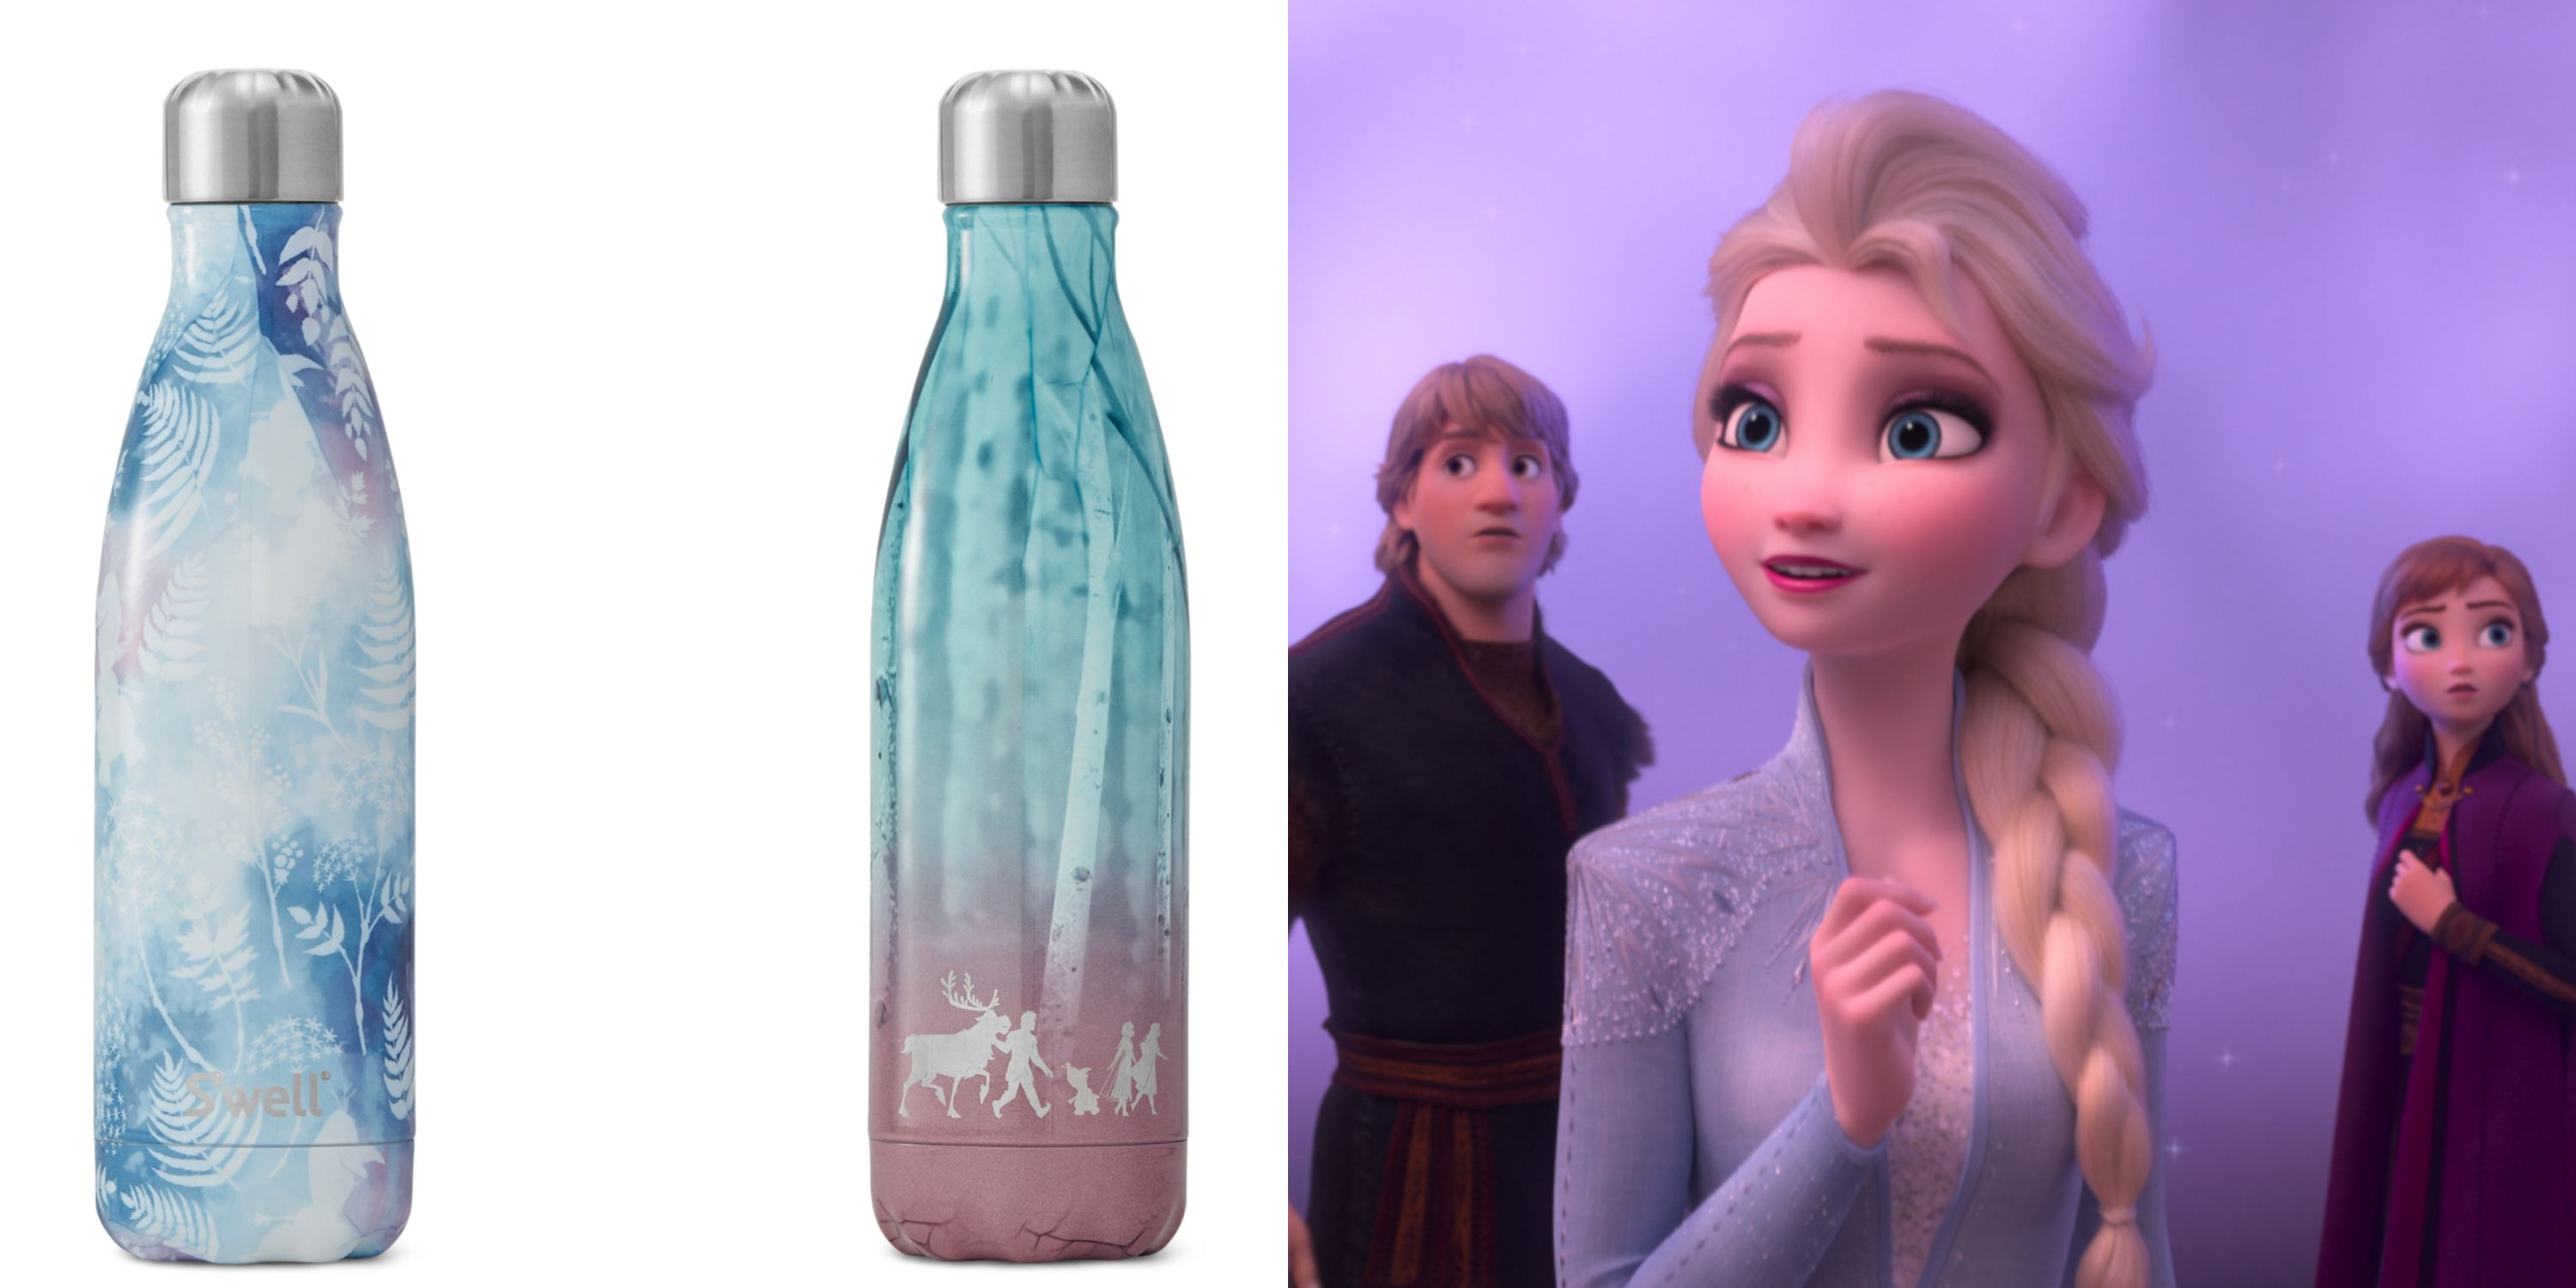 S'well's 'Frozen 2' Collection Features Anna And Elsa Water Bottles